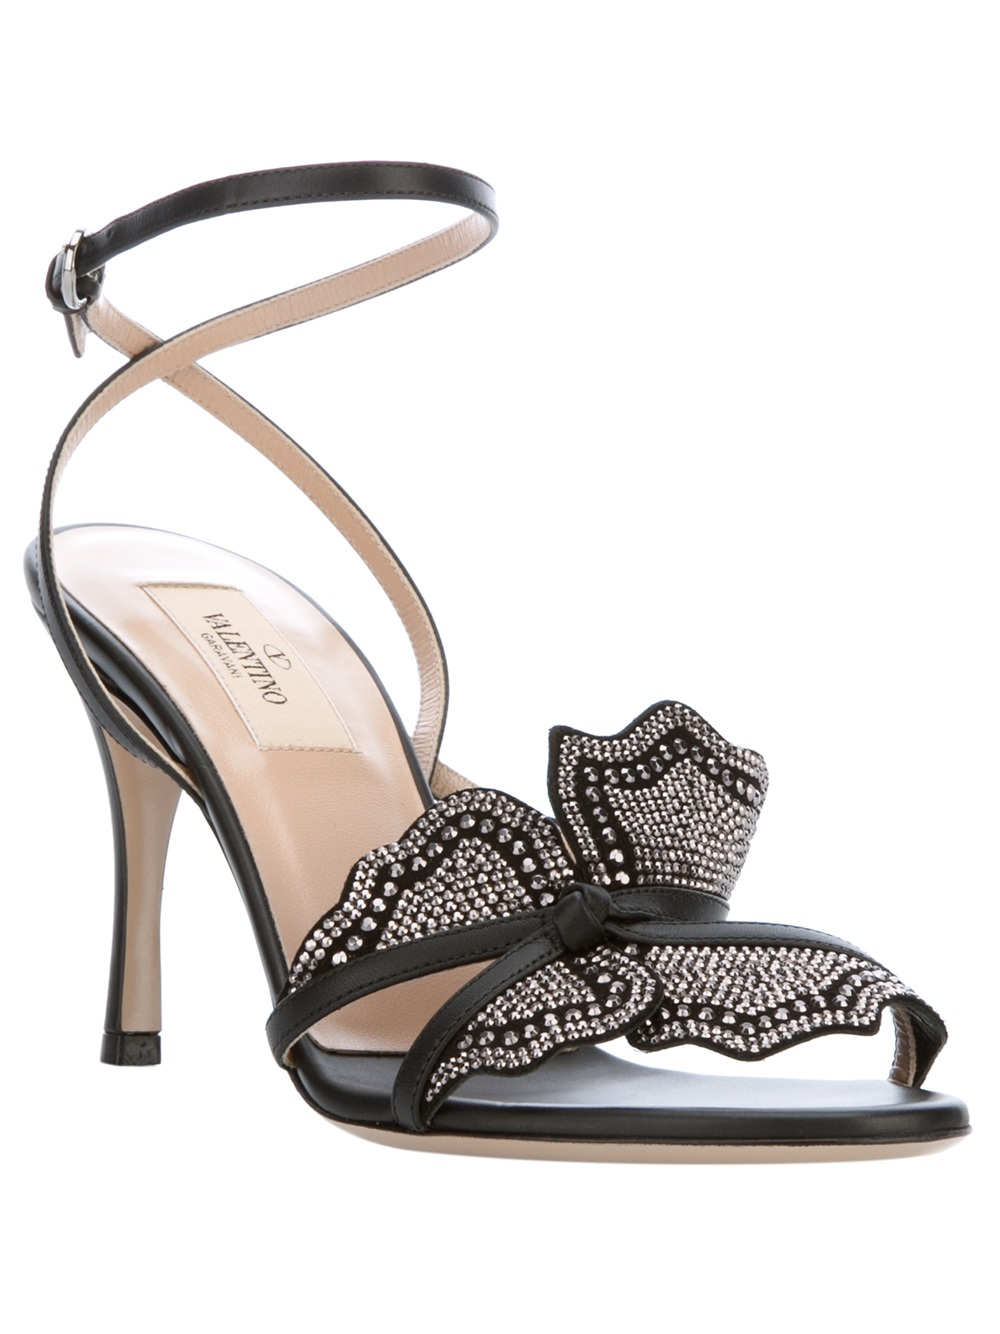 Valentino Butterfly Sandal In Black Lyst